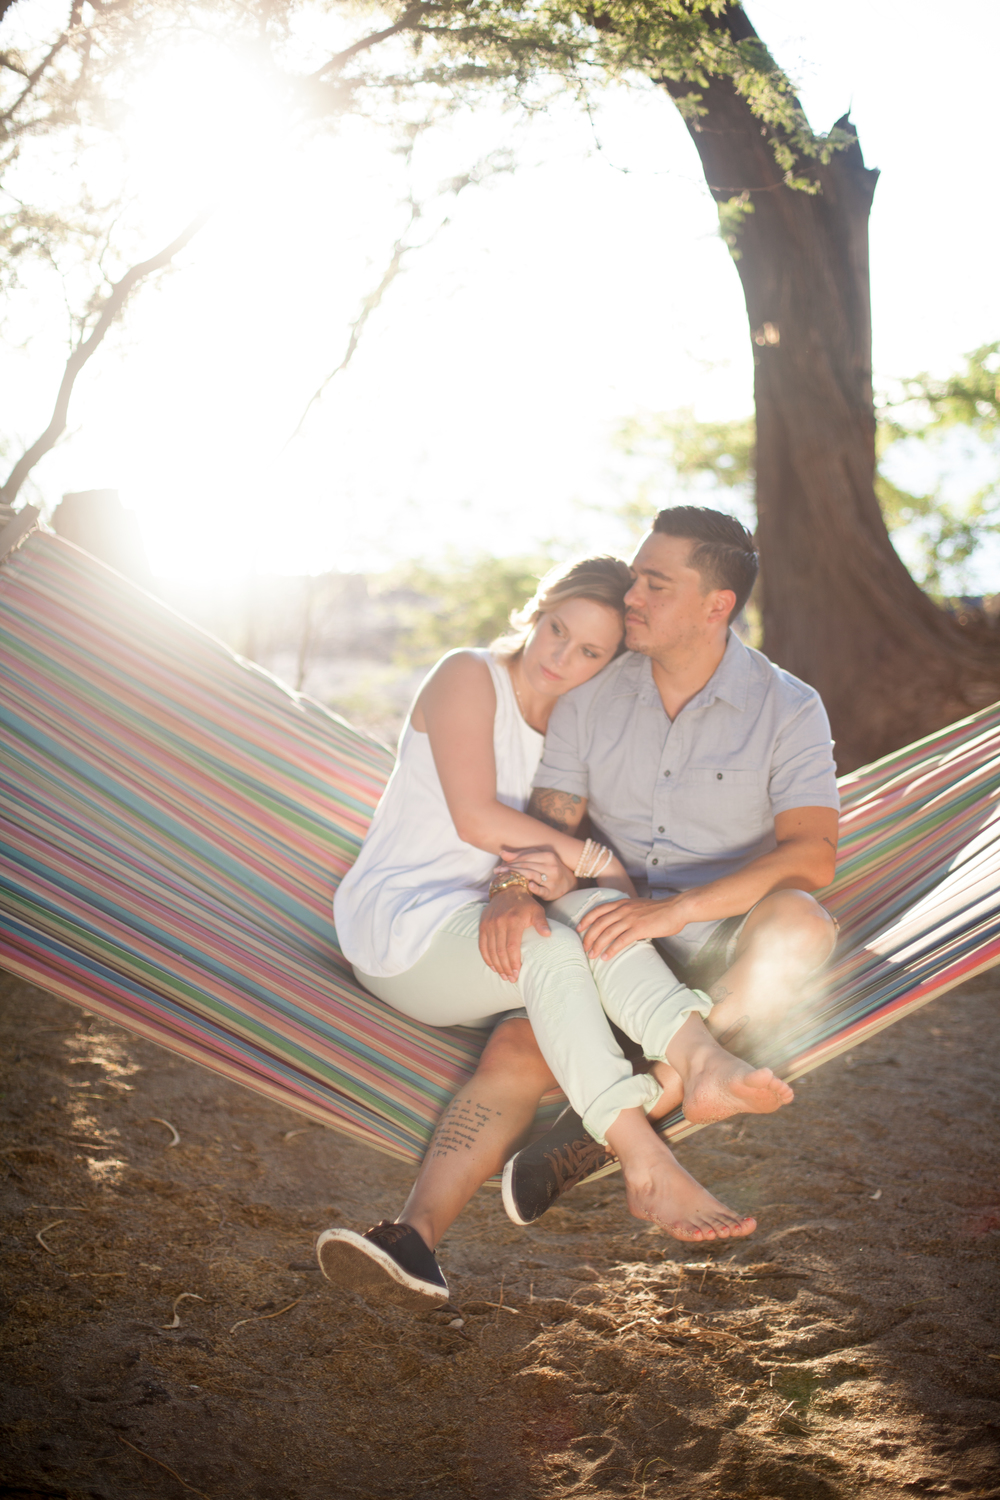 big island hawaii engagement photography 20150529181903-1.jpg